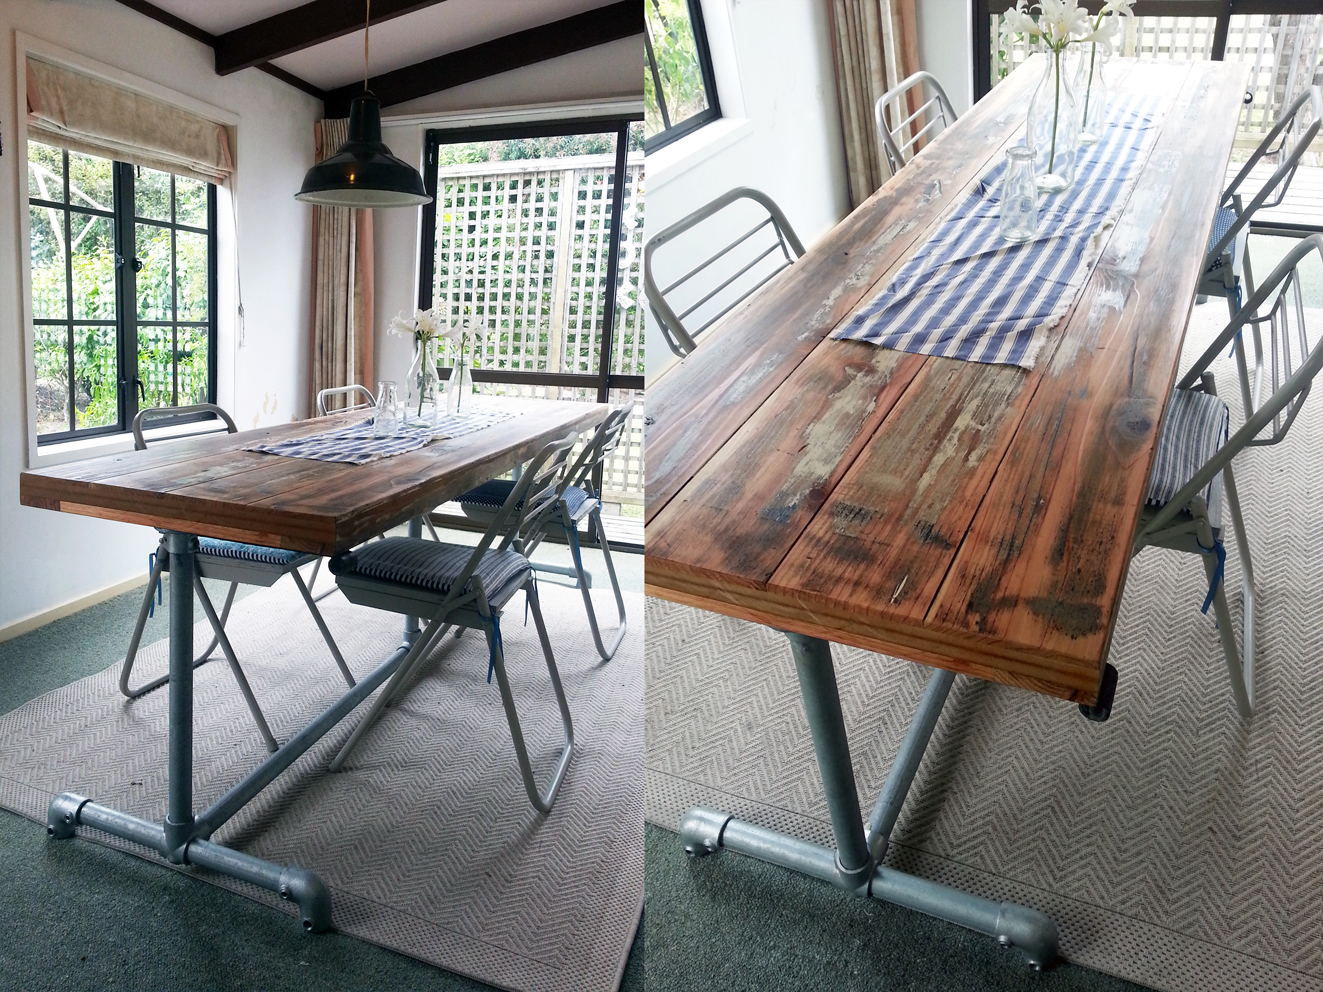 INDUSTRIAL DINING TABLE timber top amp pipe legs Felt : o from felt.co.nz size 1323 x 992 jpeg 1159kB